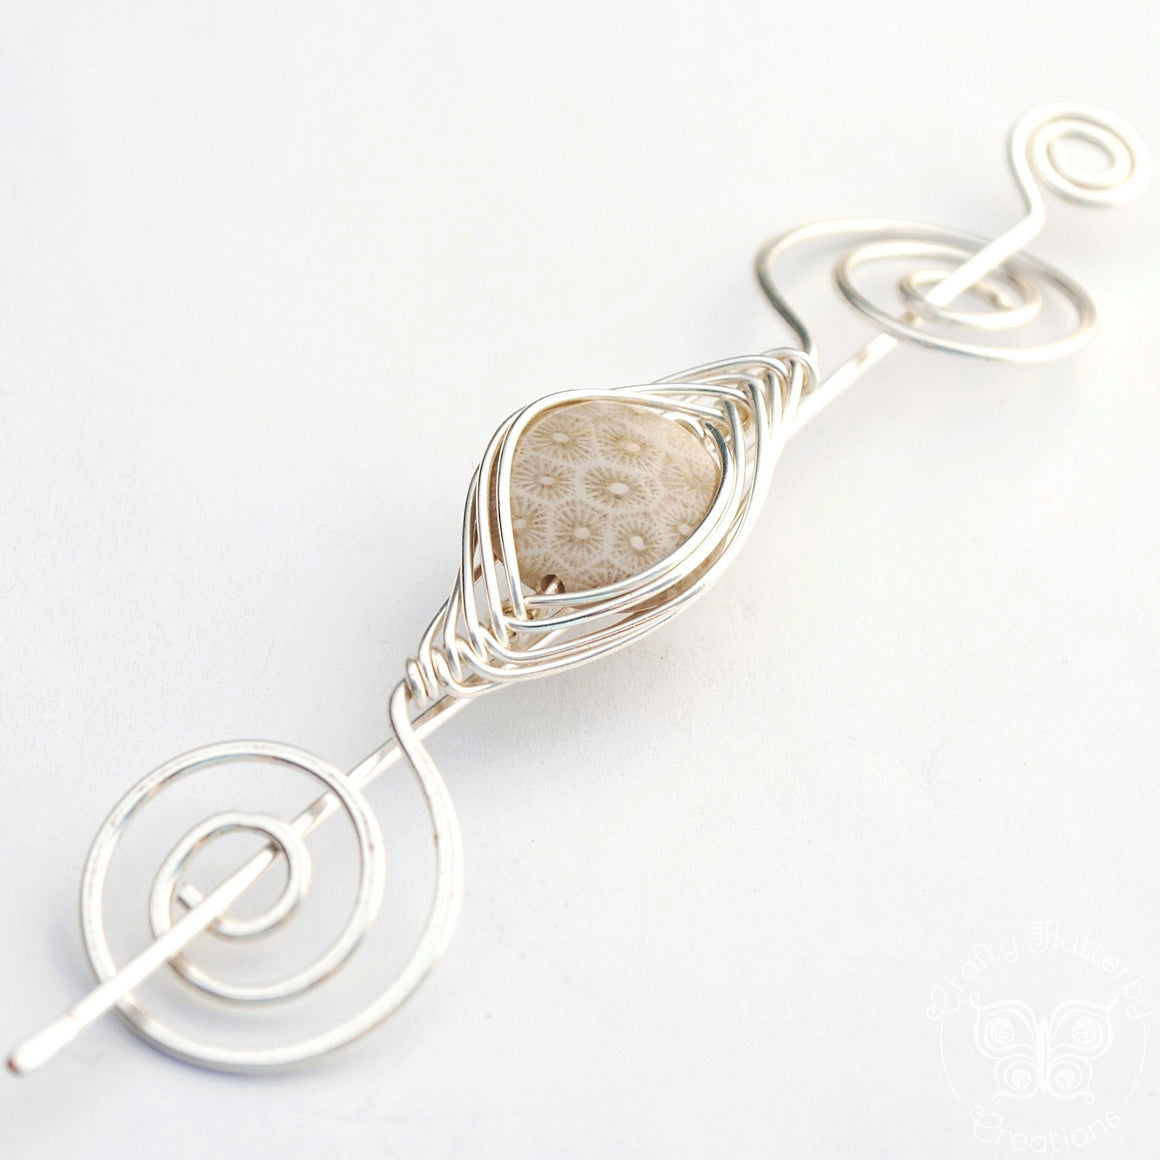 Shawl Pin, Petoskey Stone Shawl Pin - Noteworthy Naturals Silver - Crafty Flutterby Creations